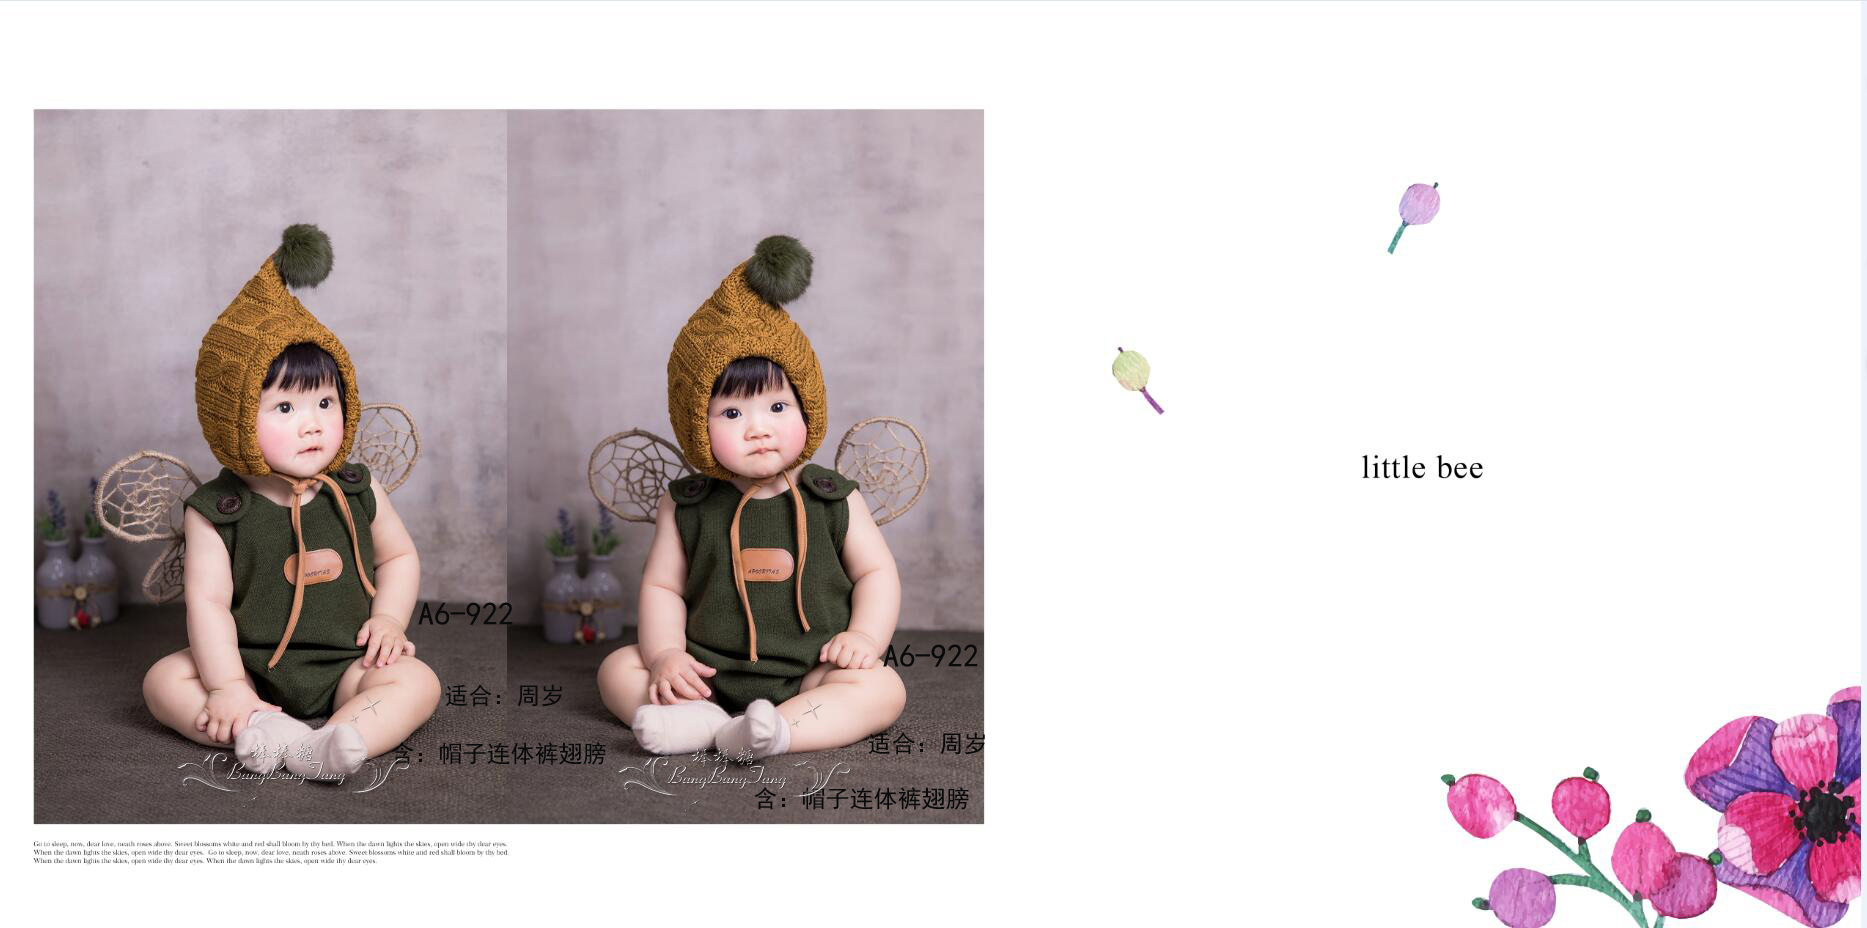 2017 chickens in the new age of children's photography studio baby garment one hundred days photo photo style clothes